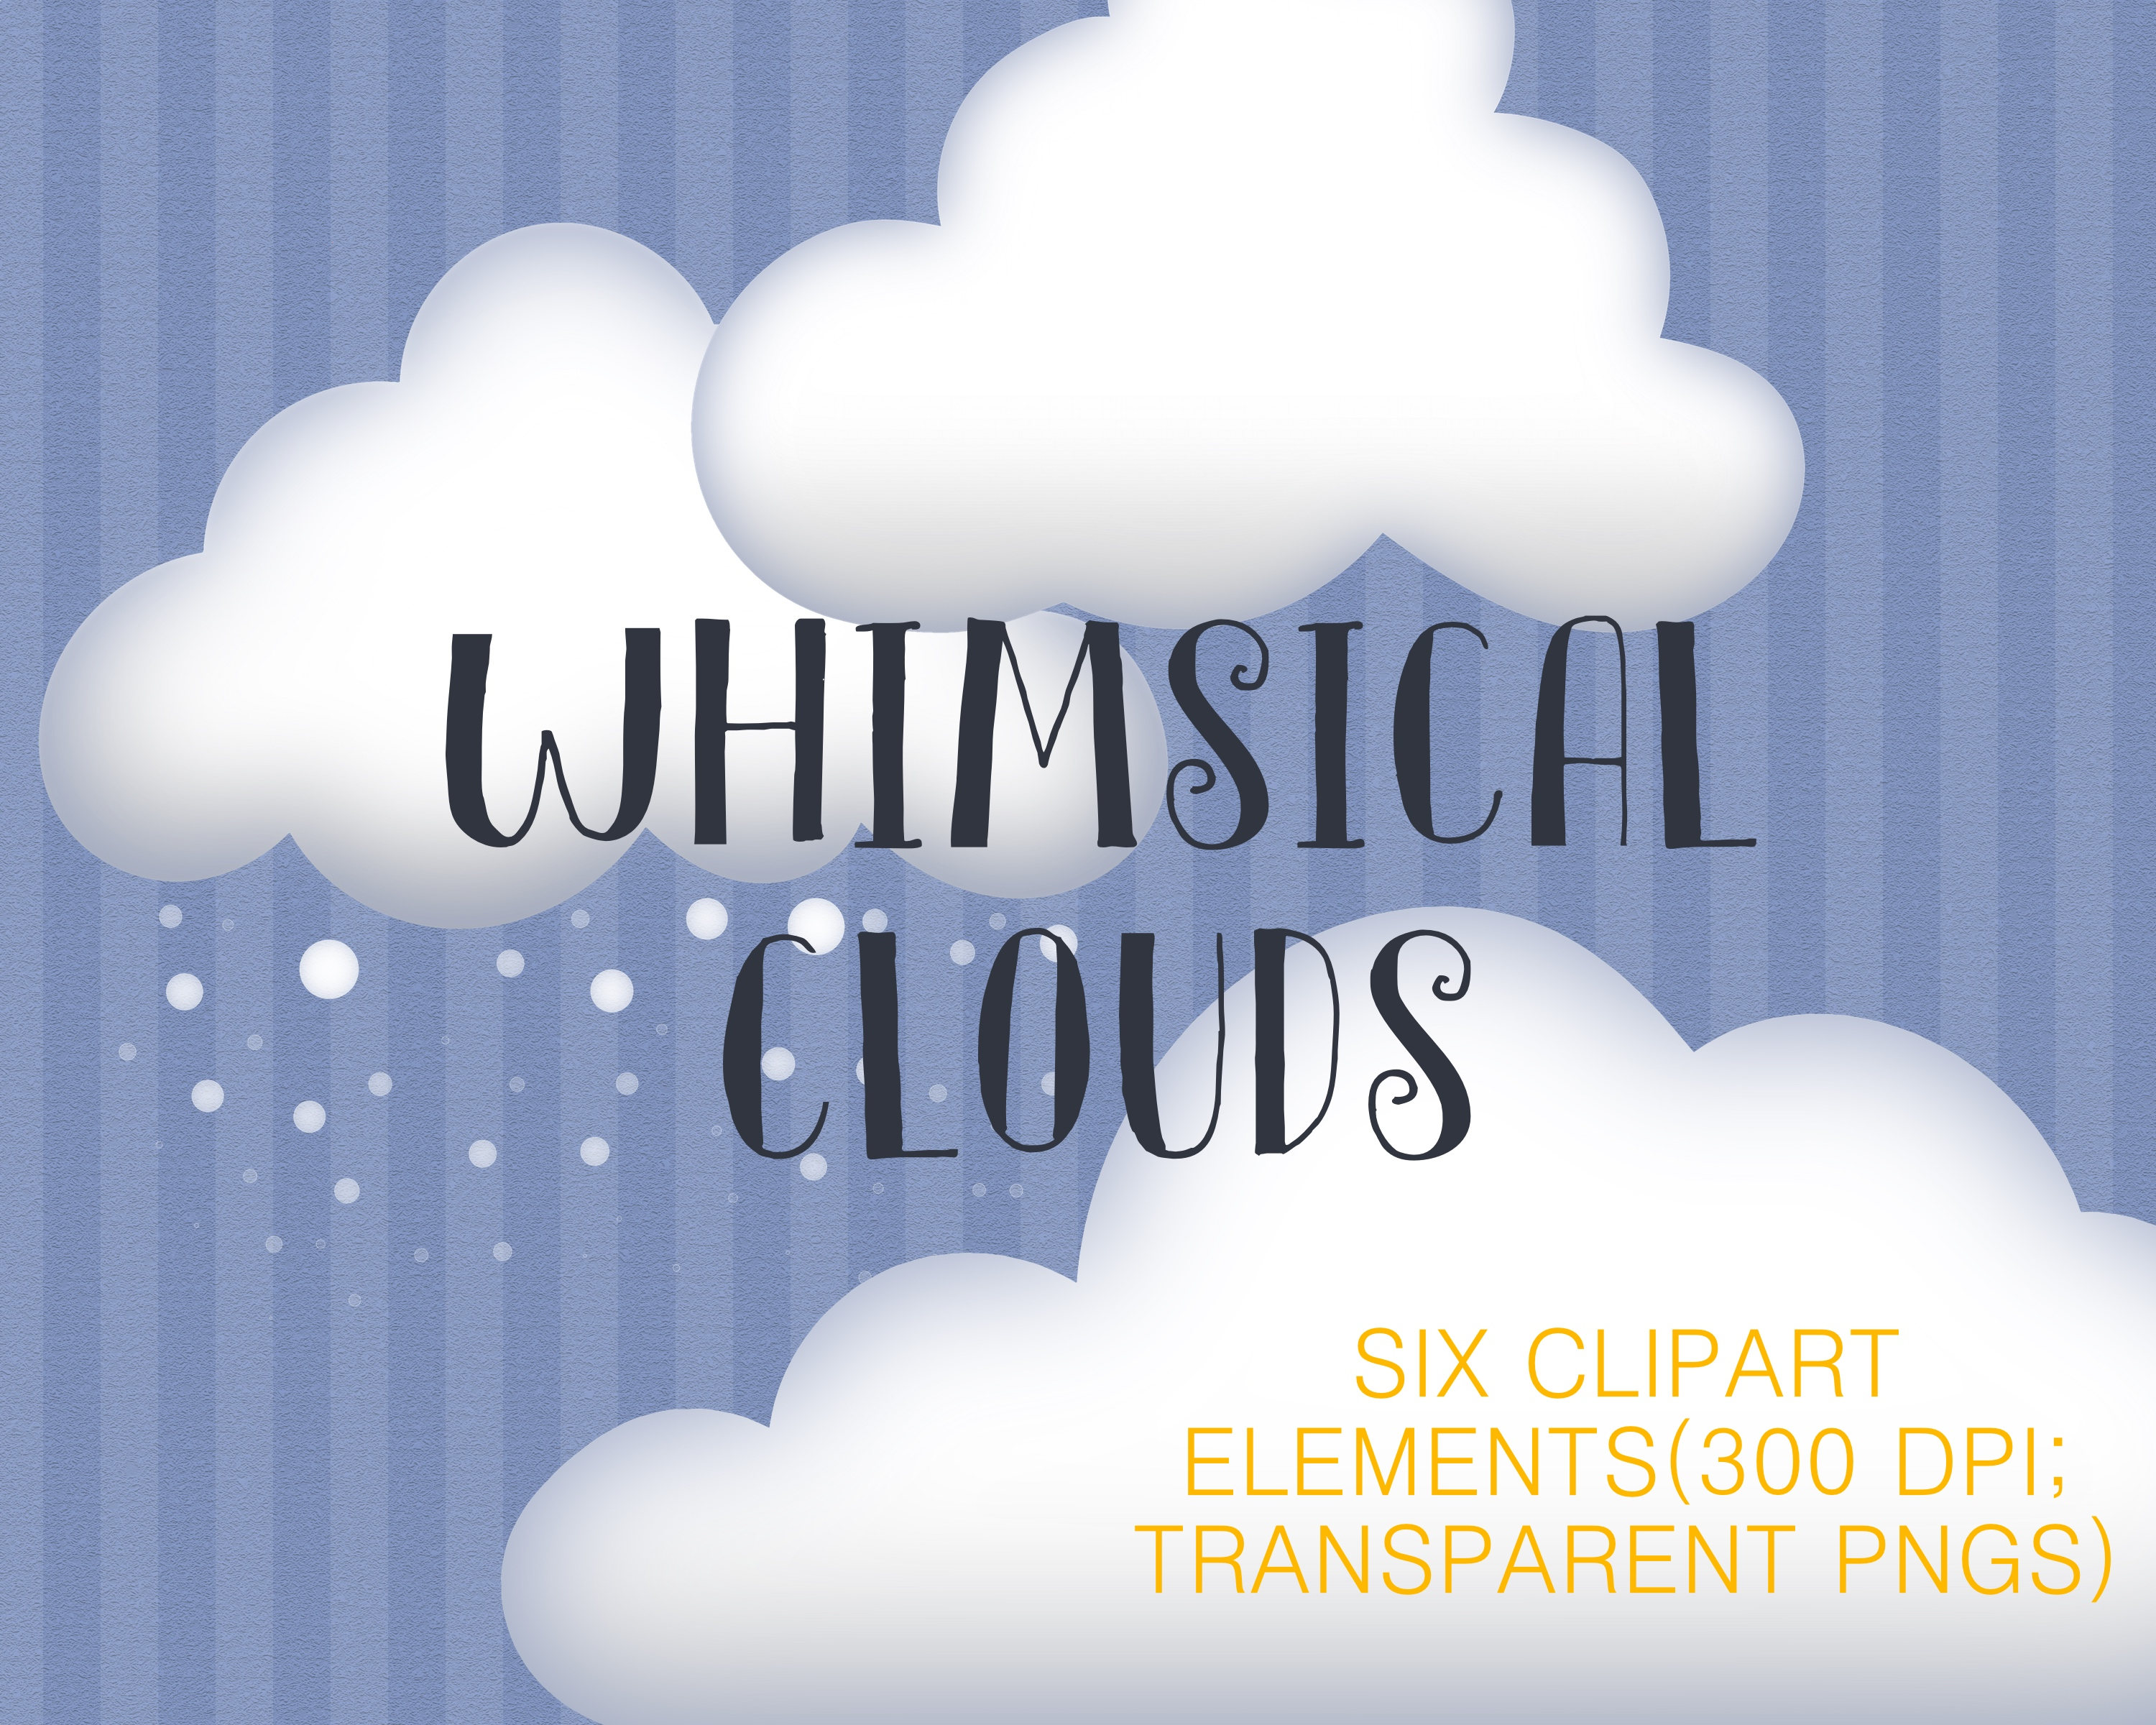 Clouds clipart logo. Snow rain whimsical stylized